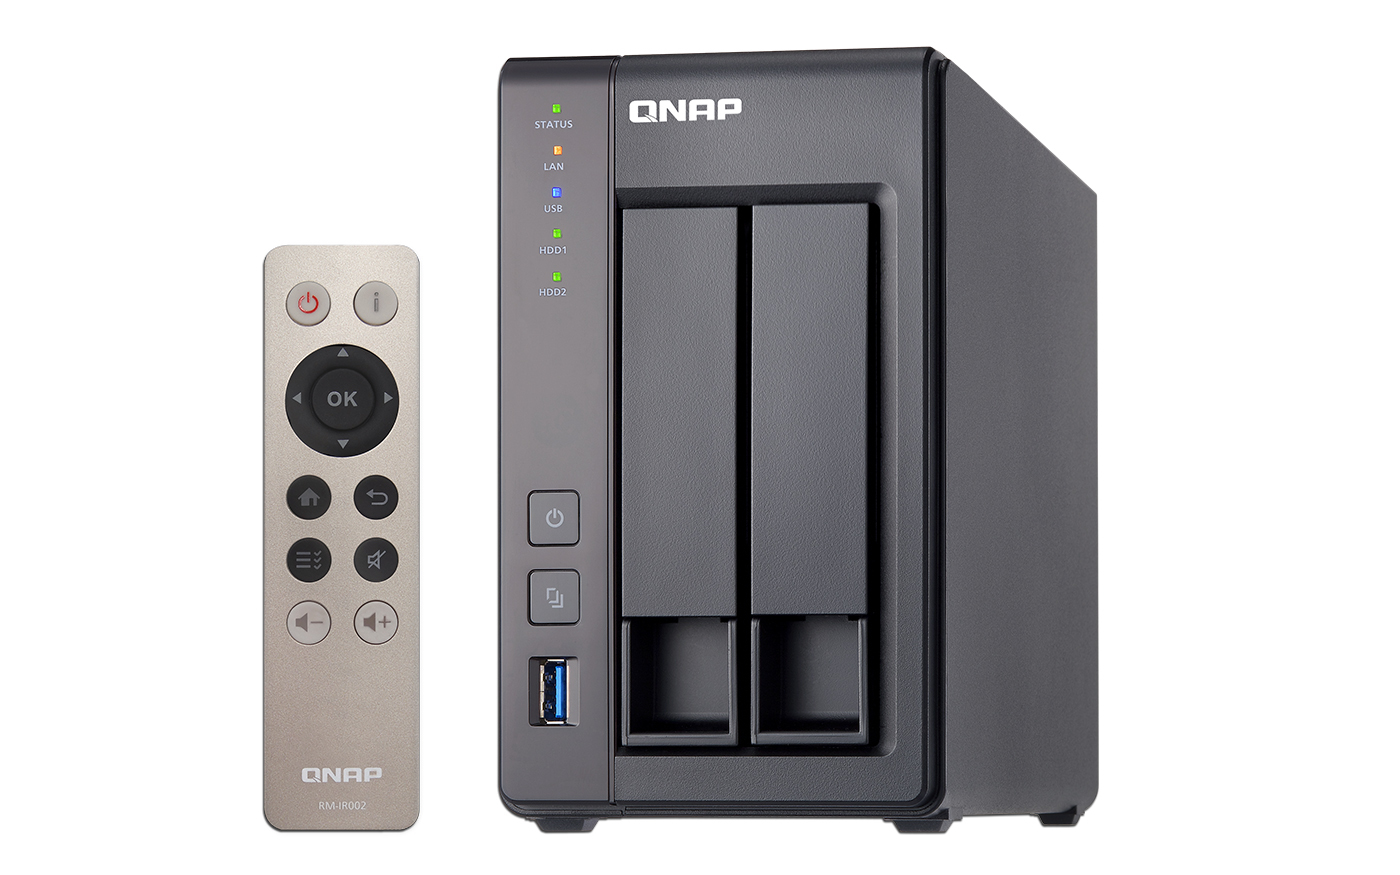 QNAP TS-251+-2G Intel Celeron 2.0GHz Quad Core (up to 2.42GHz) Adapter 2 bay